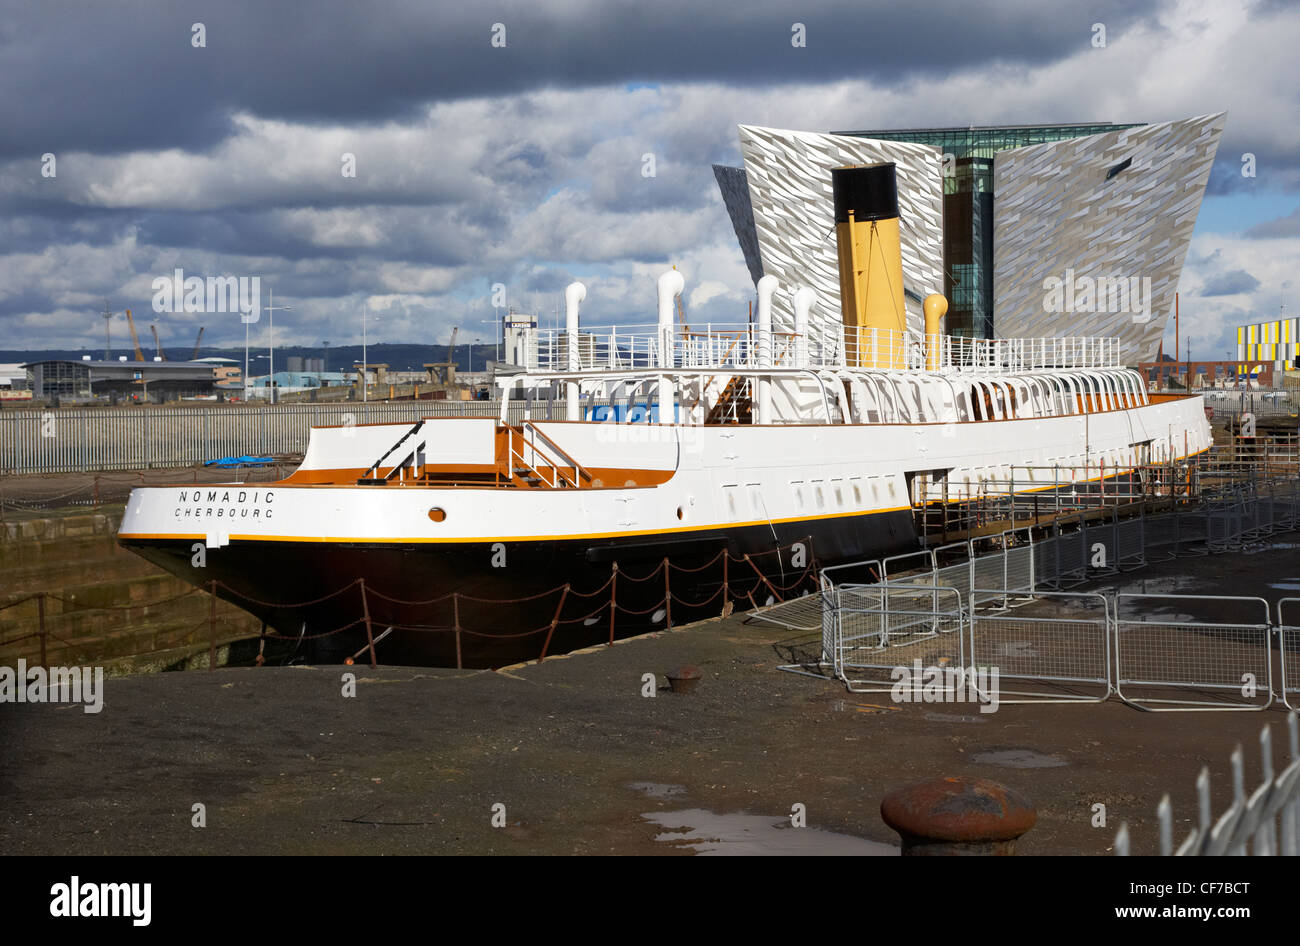 the refurbished ss nomadic tender for the titanic in titanic quarter belfast northern ireland - Stock Image